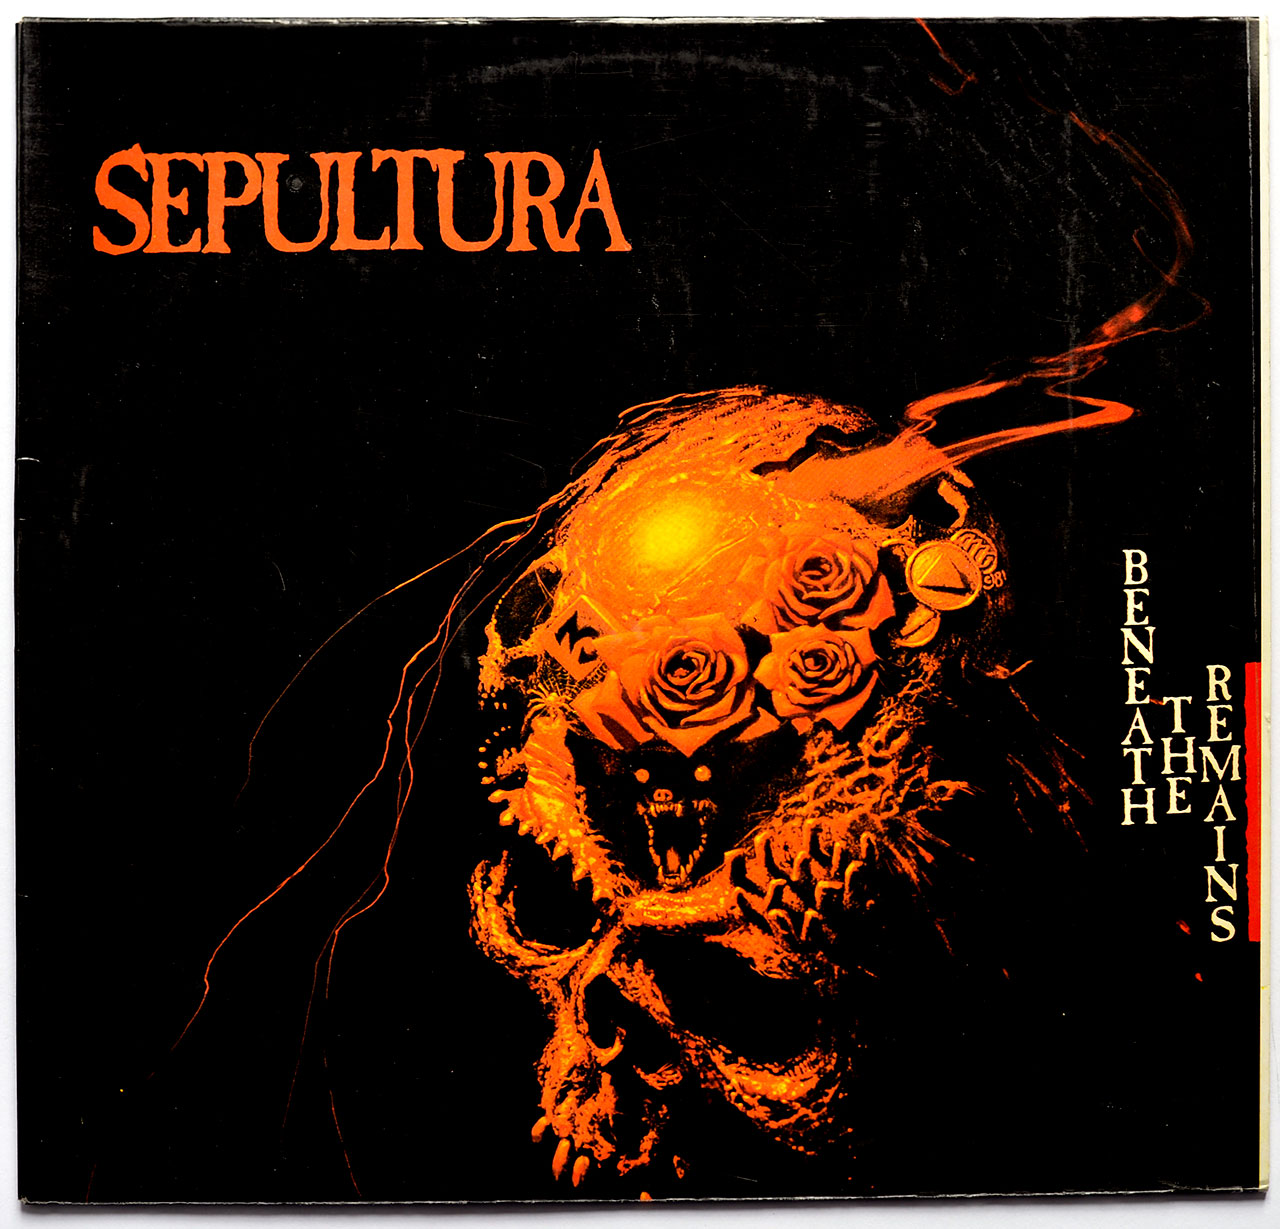 "SEPULTURA - BENEATH THE REMAINS (POLAND) 12"" LP ALBUM VINYL"